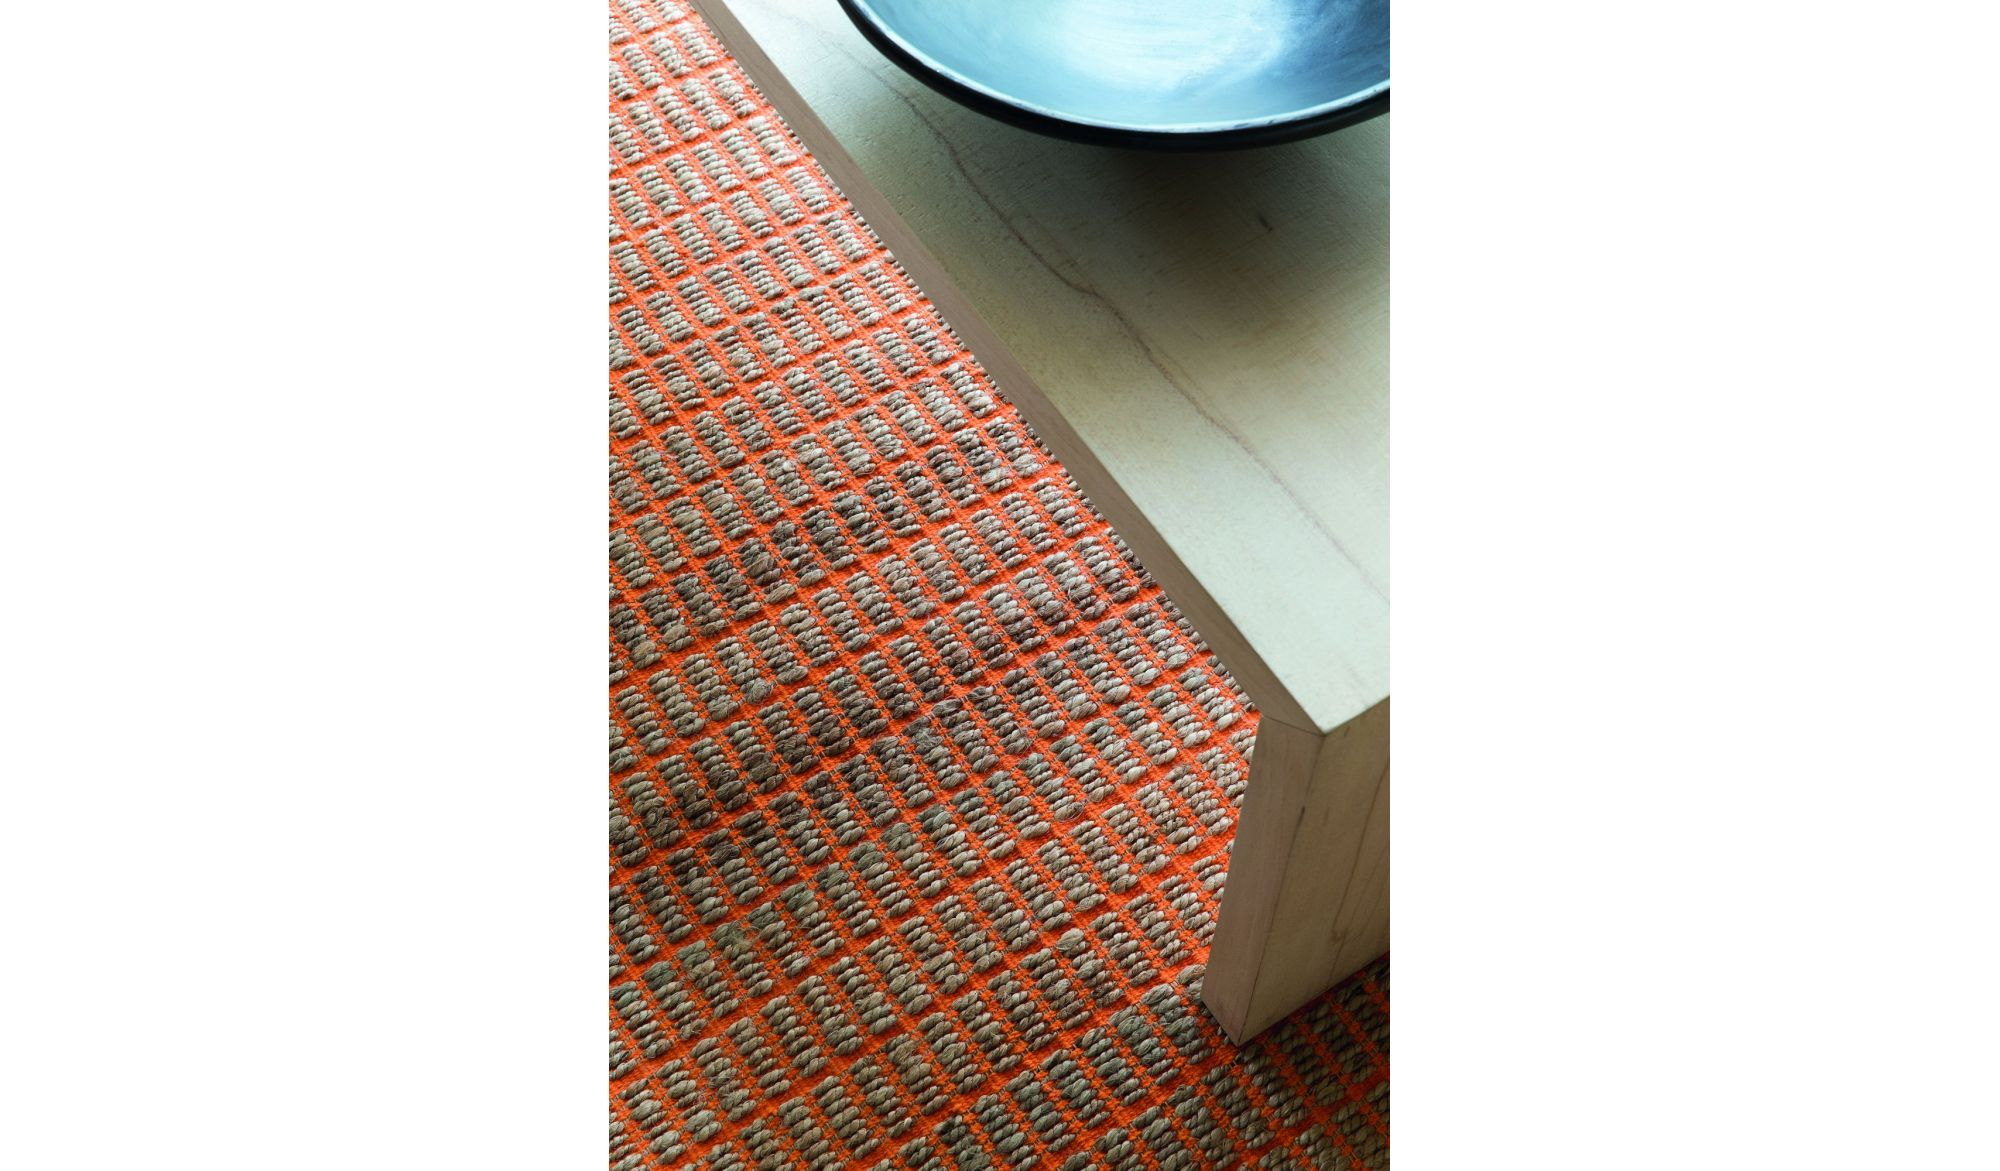 DYWAN 219.001 100 Size 200X300 - Carpet alt_dywany_kolor_100 size 200x300 Checked - Visualisation